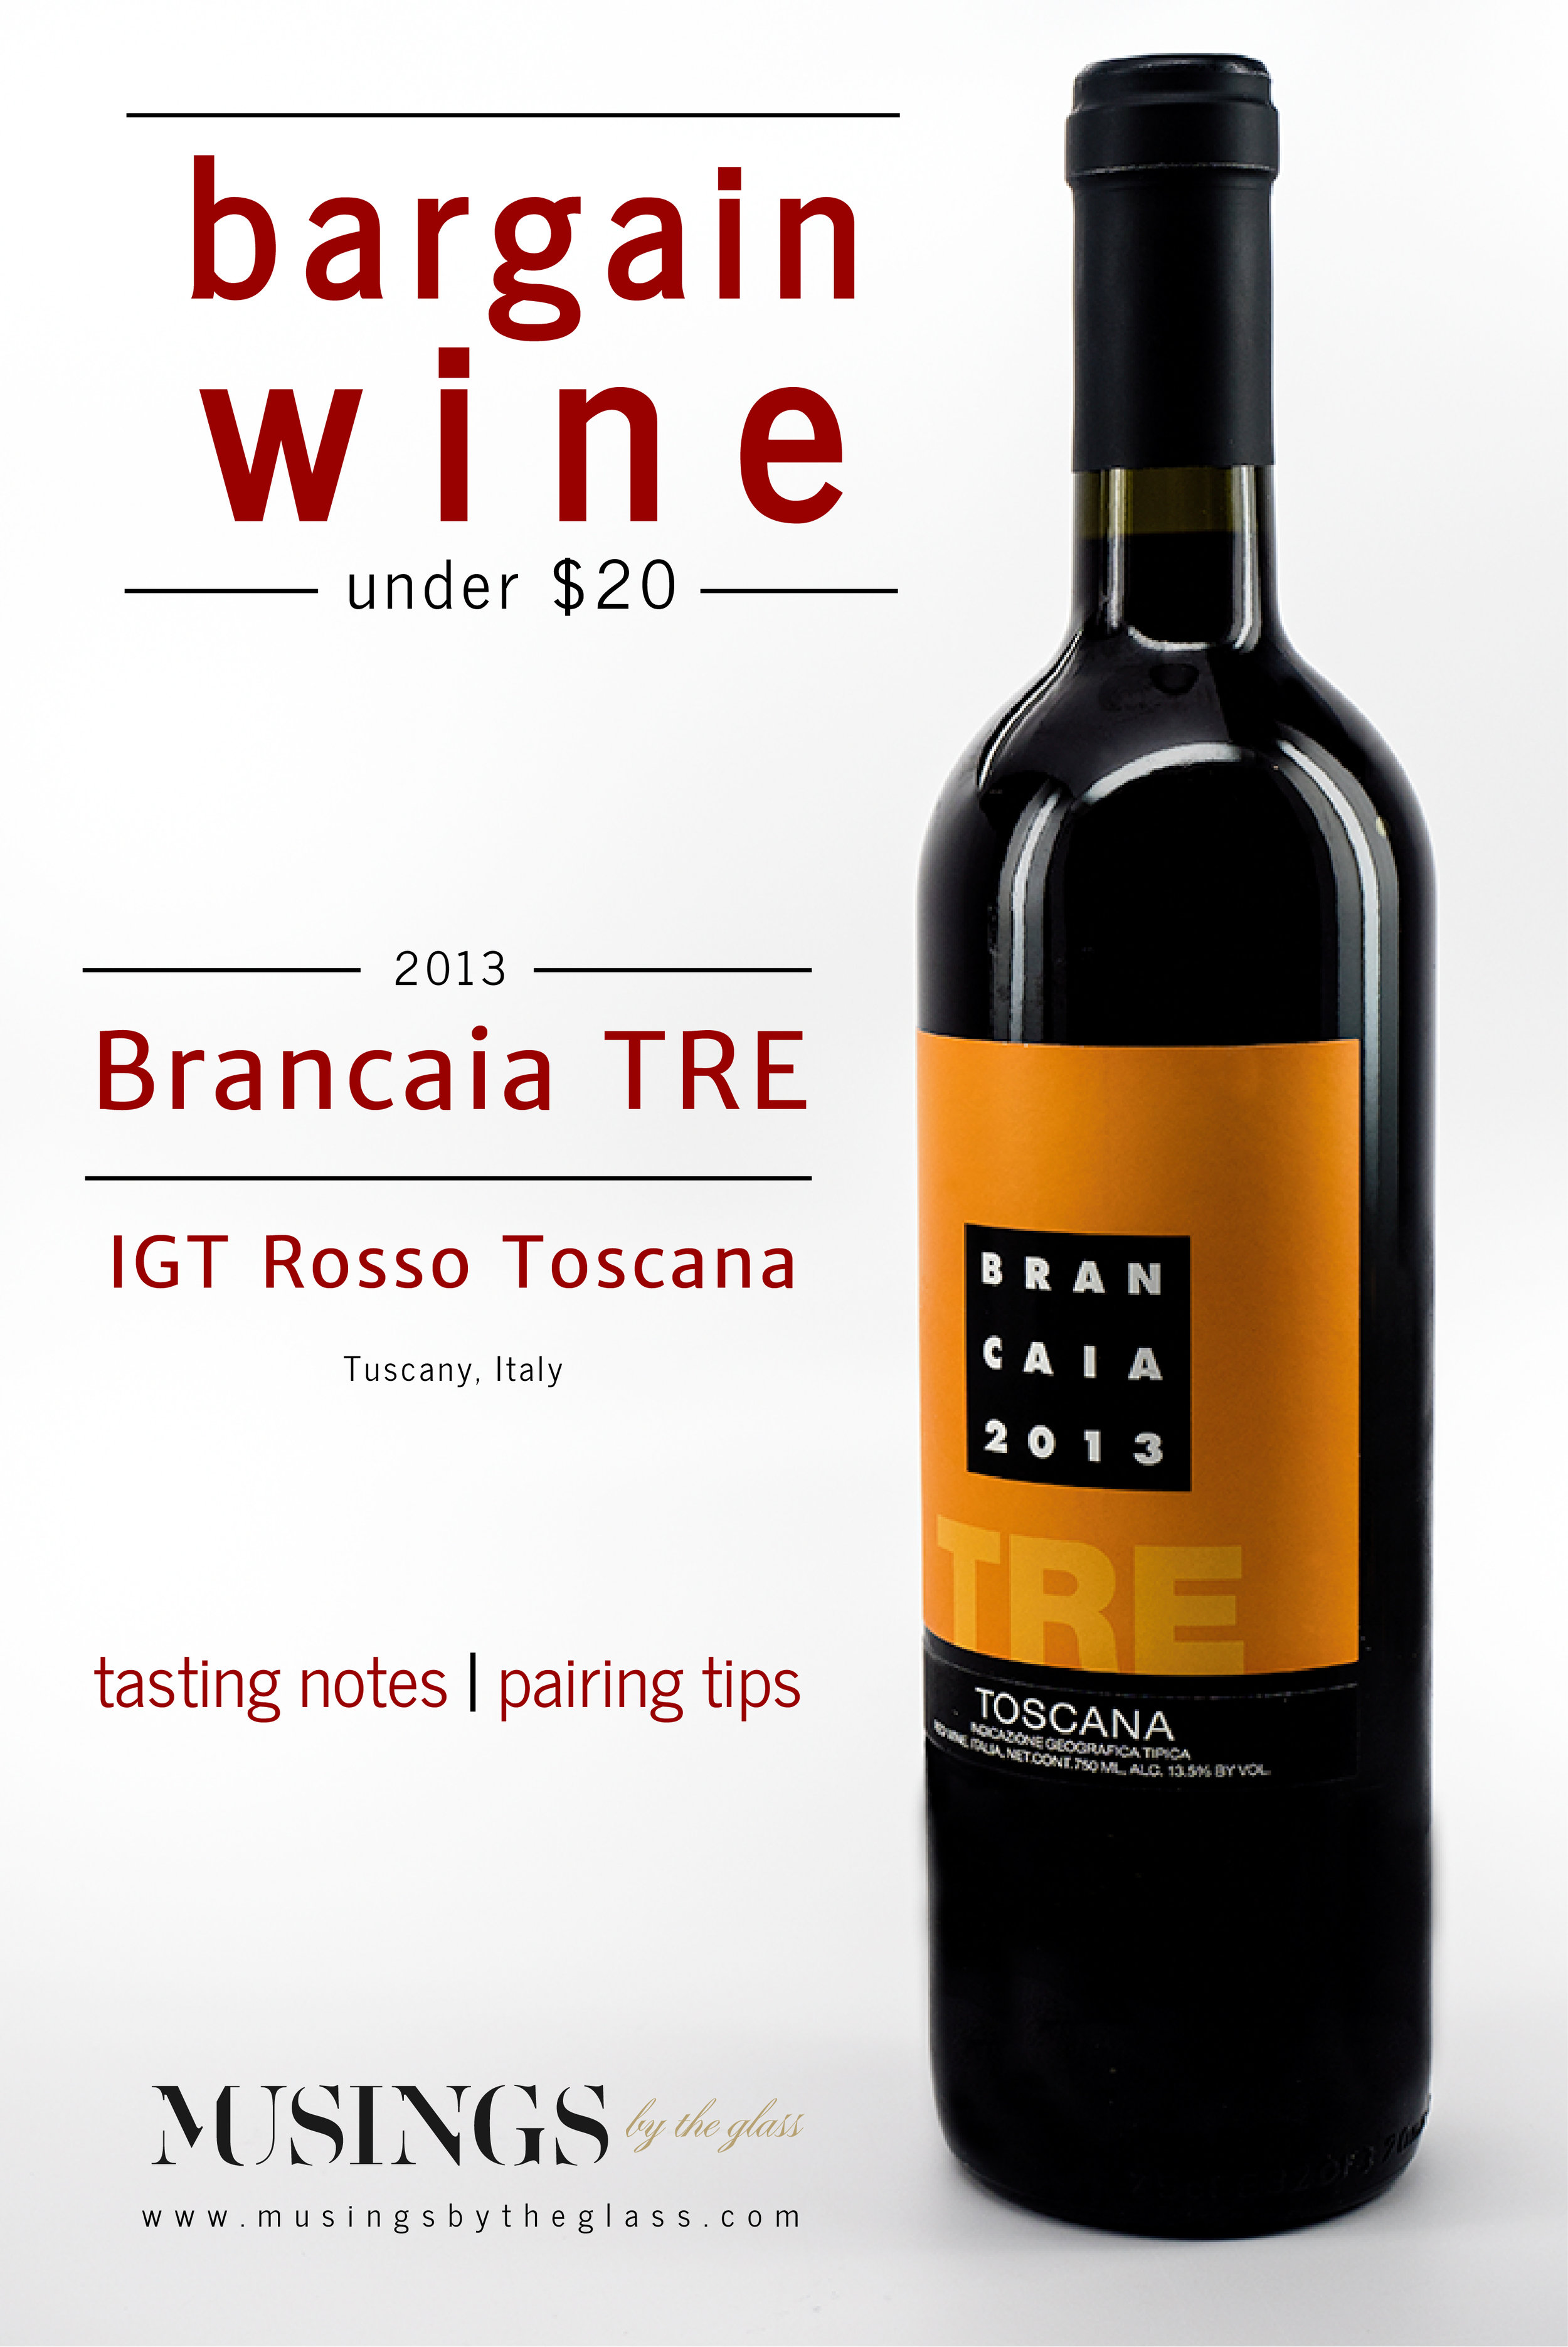 Musings by the Glass - Bargain Wines - 2013 Brancaia TRE IGT Toscana, Super Tuscan, Tuscany, Italy